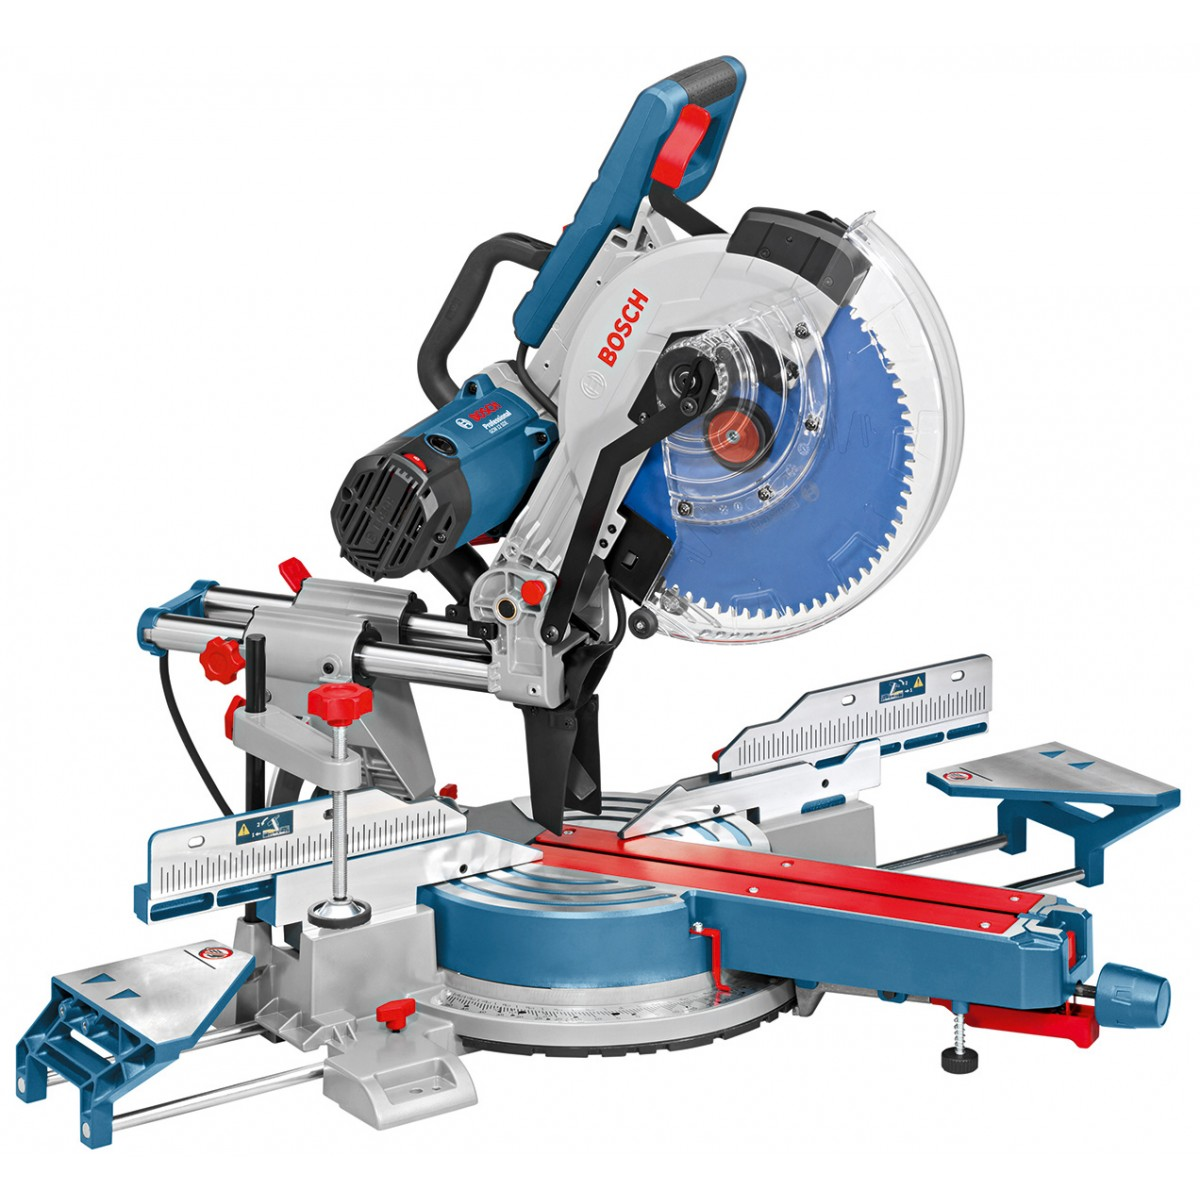 bosch gcm 12 sde 240v mitre saw 305mm blade howe tools uk. Black Bedroom Furniture Sets. Home Design Ideas